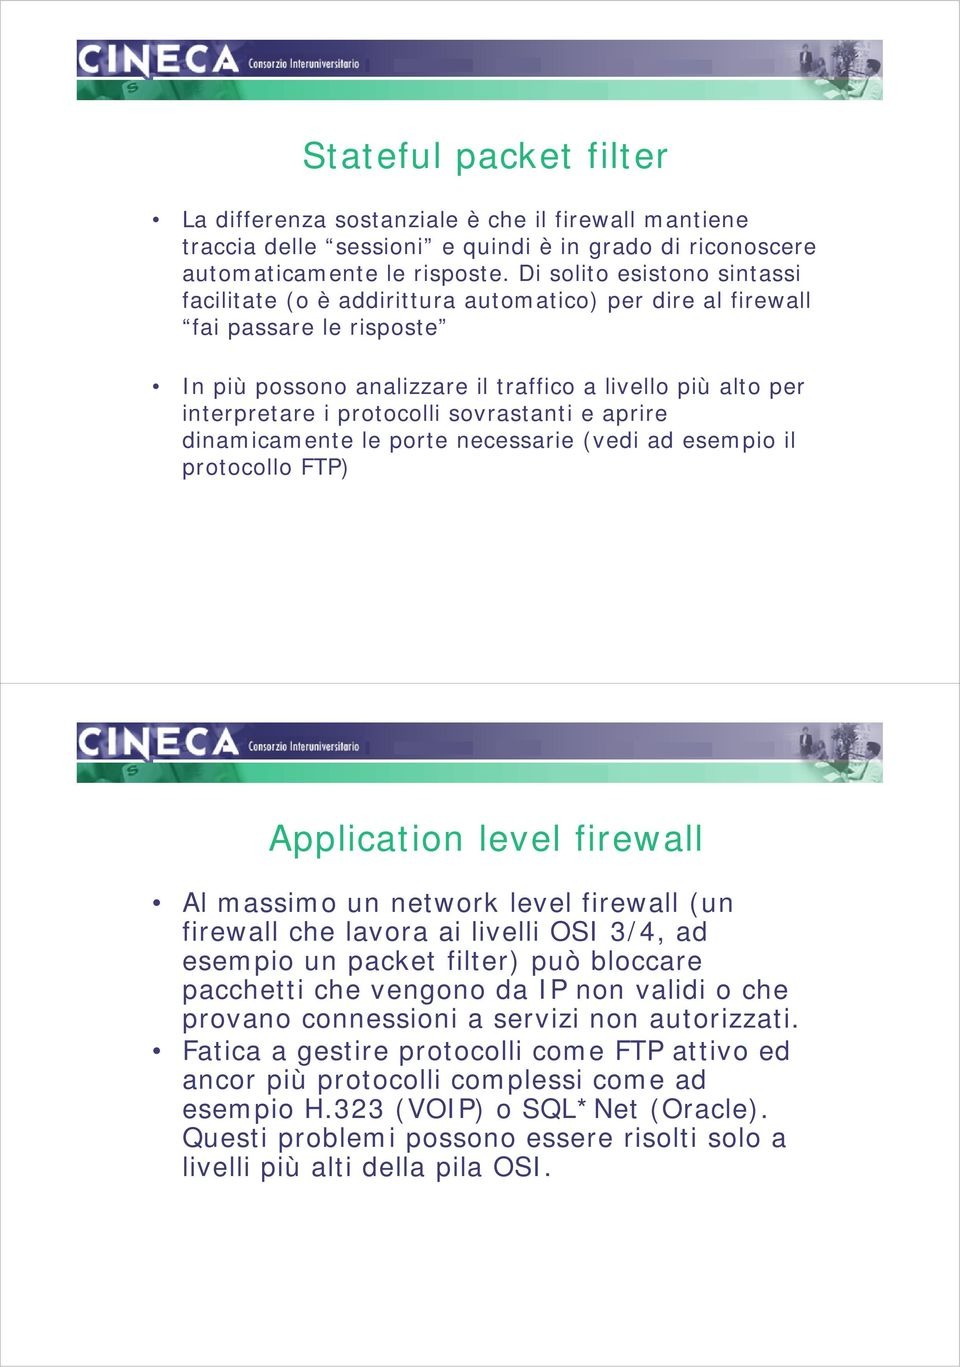 sovrastanti e aprire dinamicamente le porte necessarie (vedi ad esempio il protocollo FTP) Application level firewall Al massimo un network level firewall (un firewall che lavora ai livelli OSI 3/4,